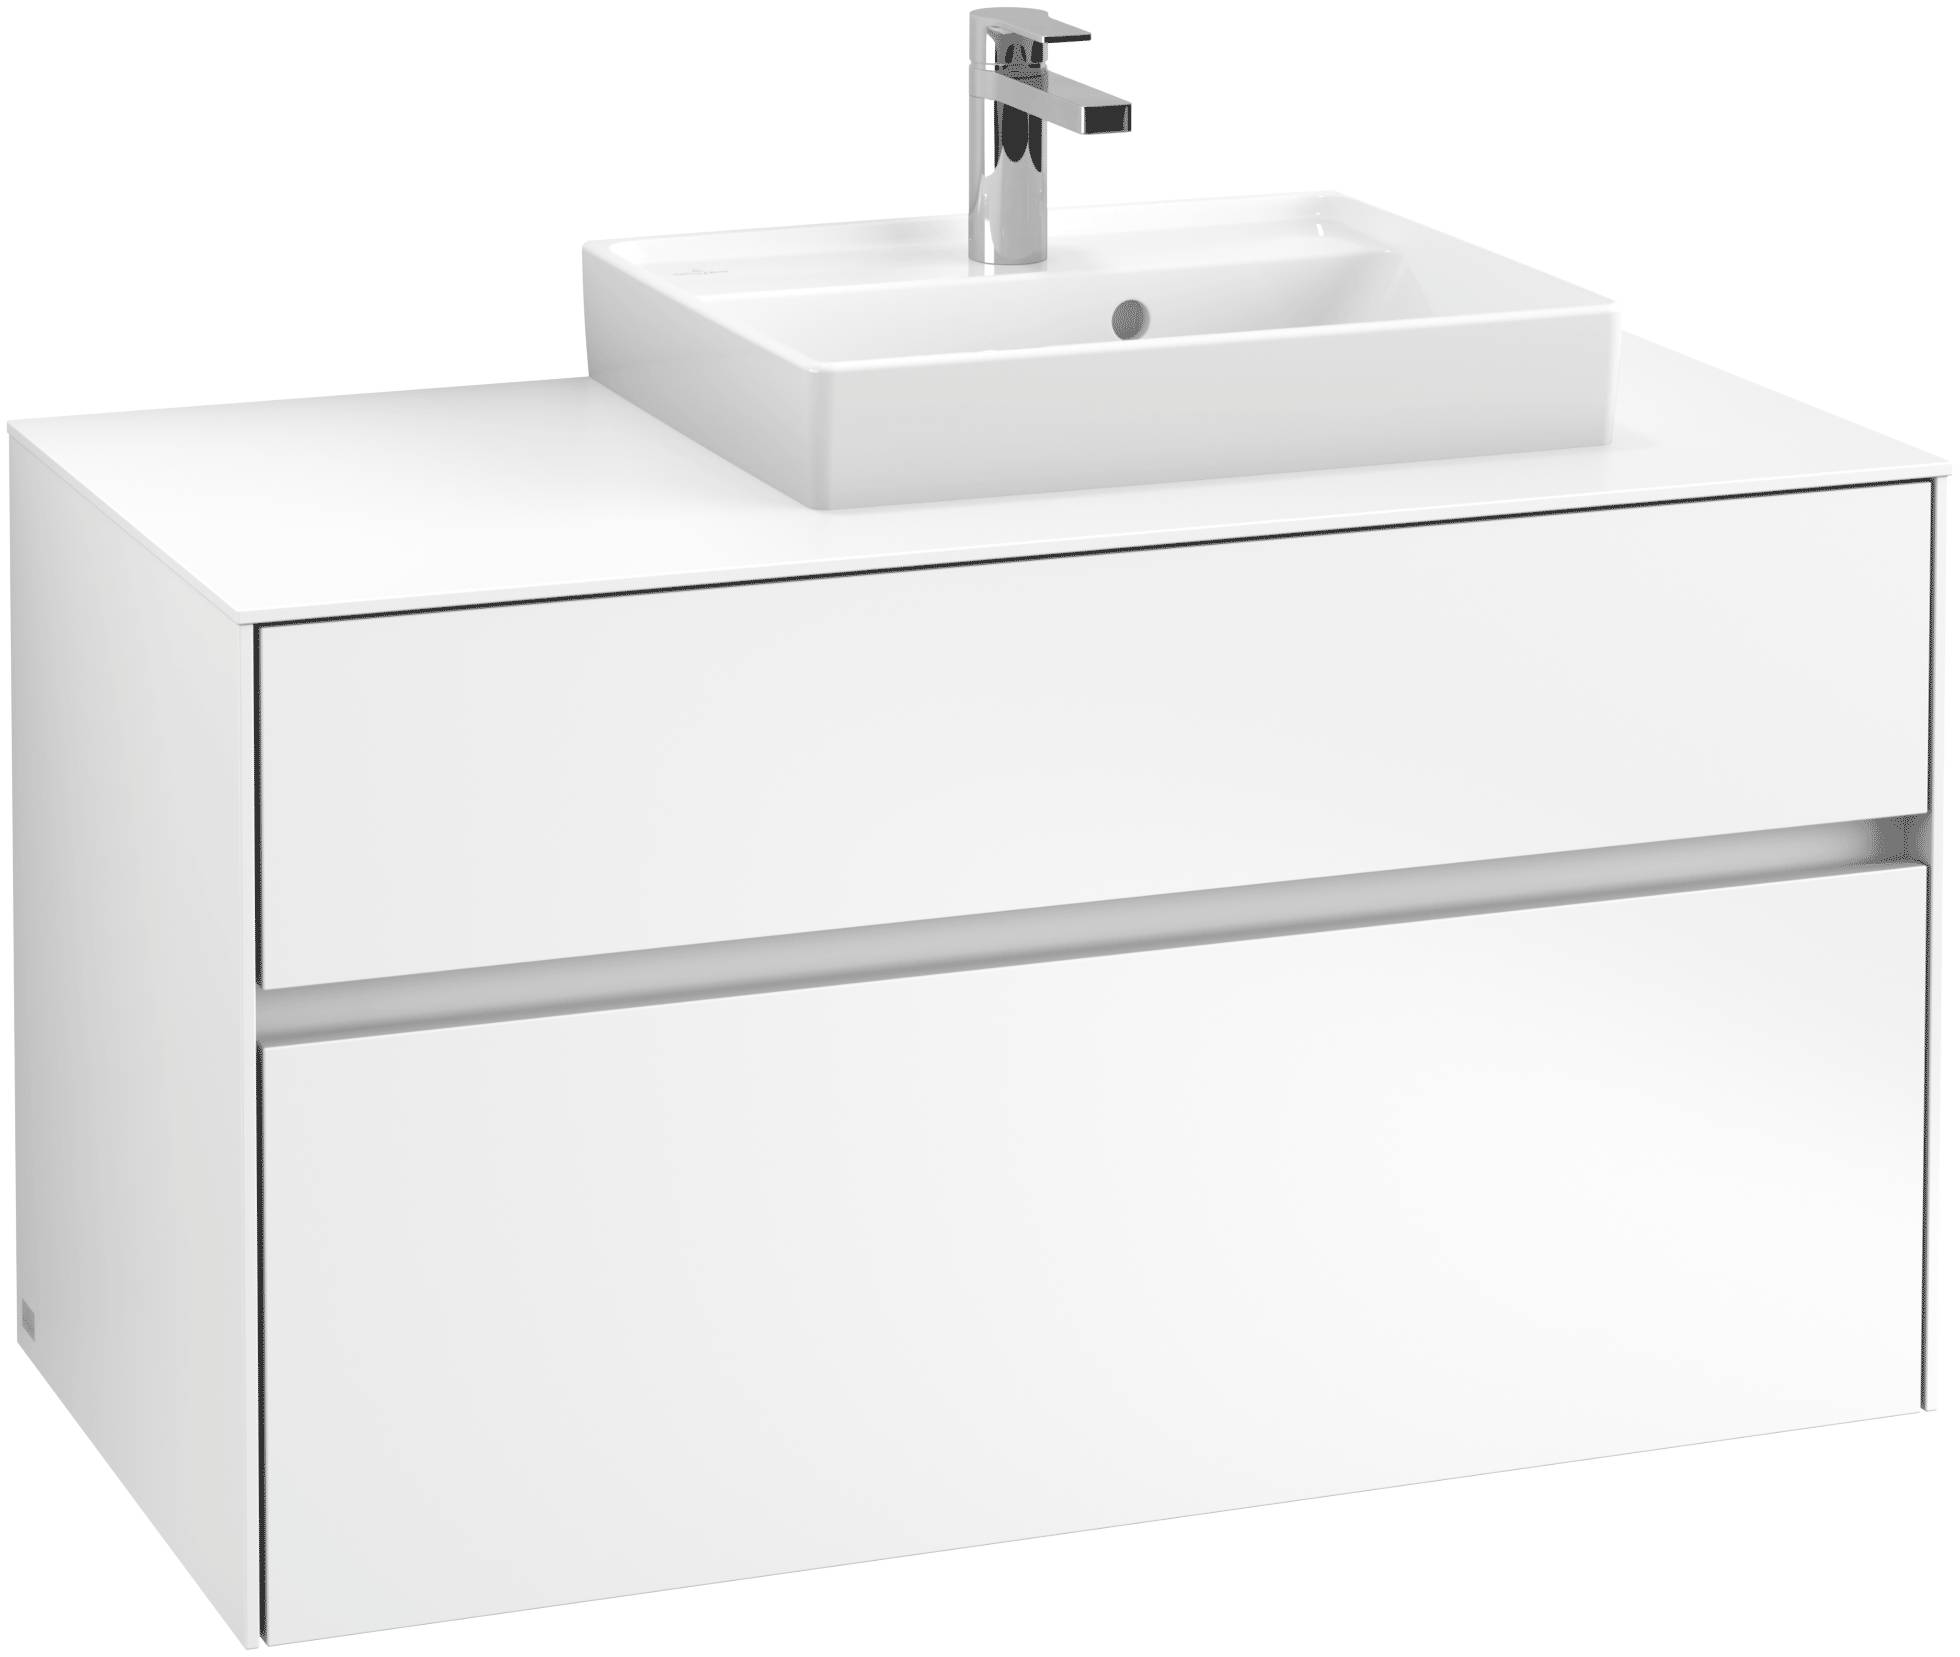 Villeroy & Boch Villeroy & Boch Collaro - Meuble sous lavabo with 2 drawers & 1 cut-out right 1000 x 548 x 500mm blanc mat